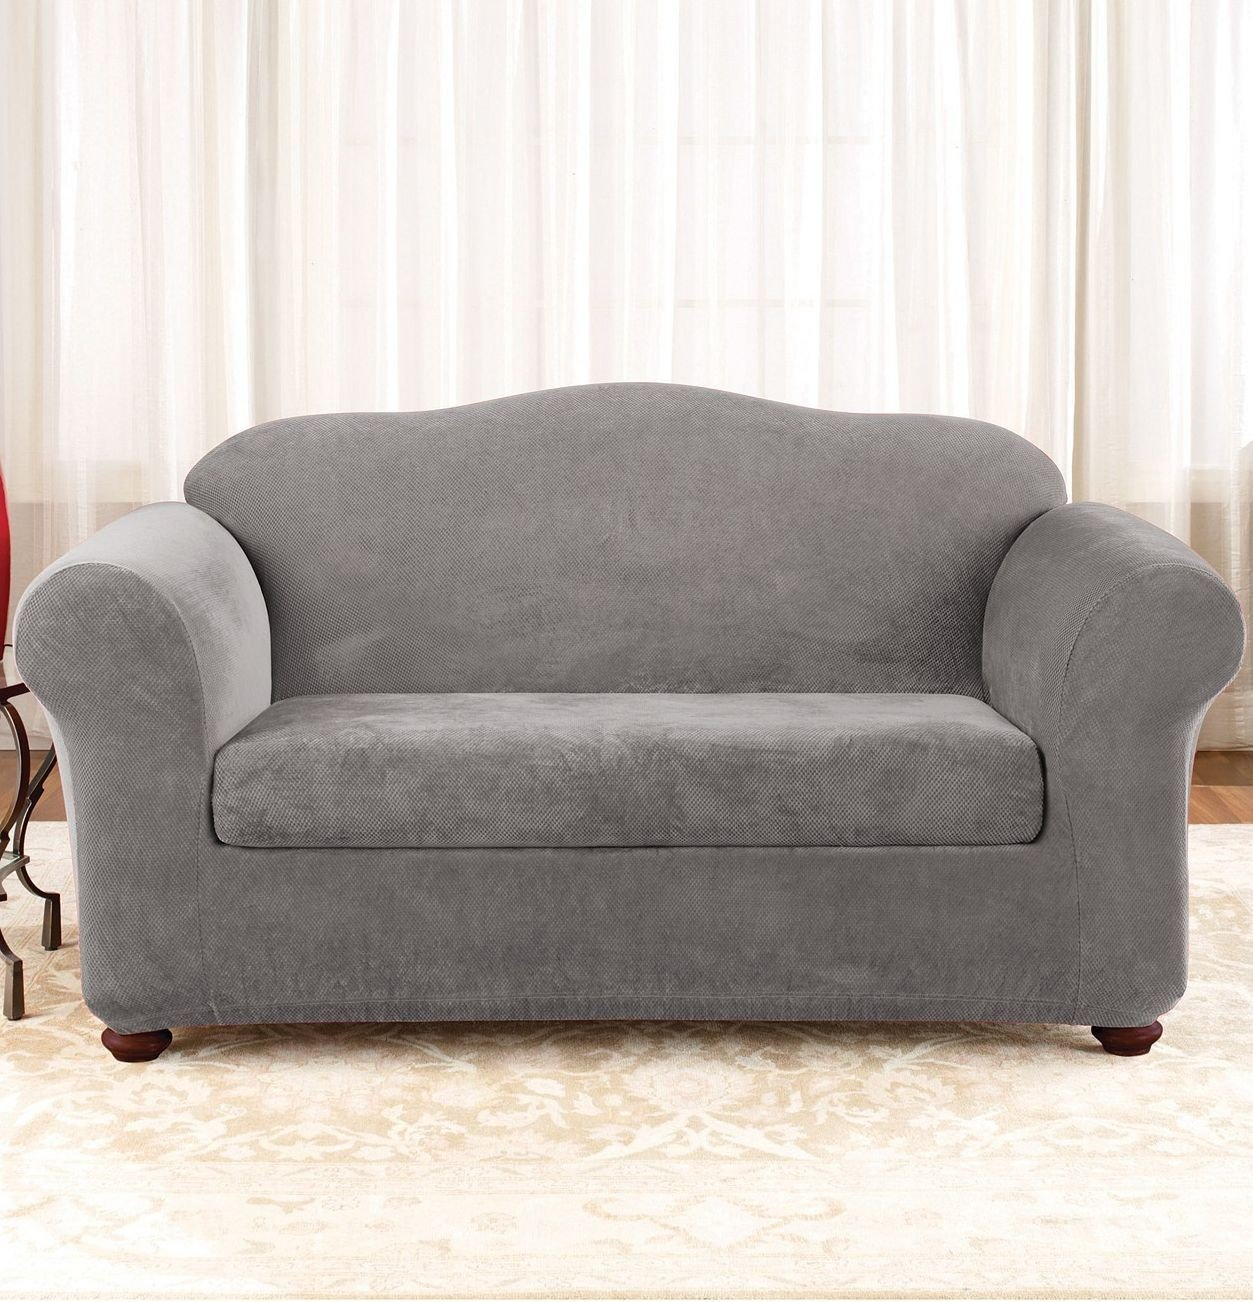 Slipcovers & Furniture Covers: Slipcovers allow you to spruce up your home decor 5% rewards with Club O · 99% on-time shipping · Free shipping over $45Brands: Christopher Knight, Ashley Furniture, Furniture of America, Abbyson.